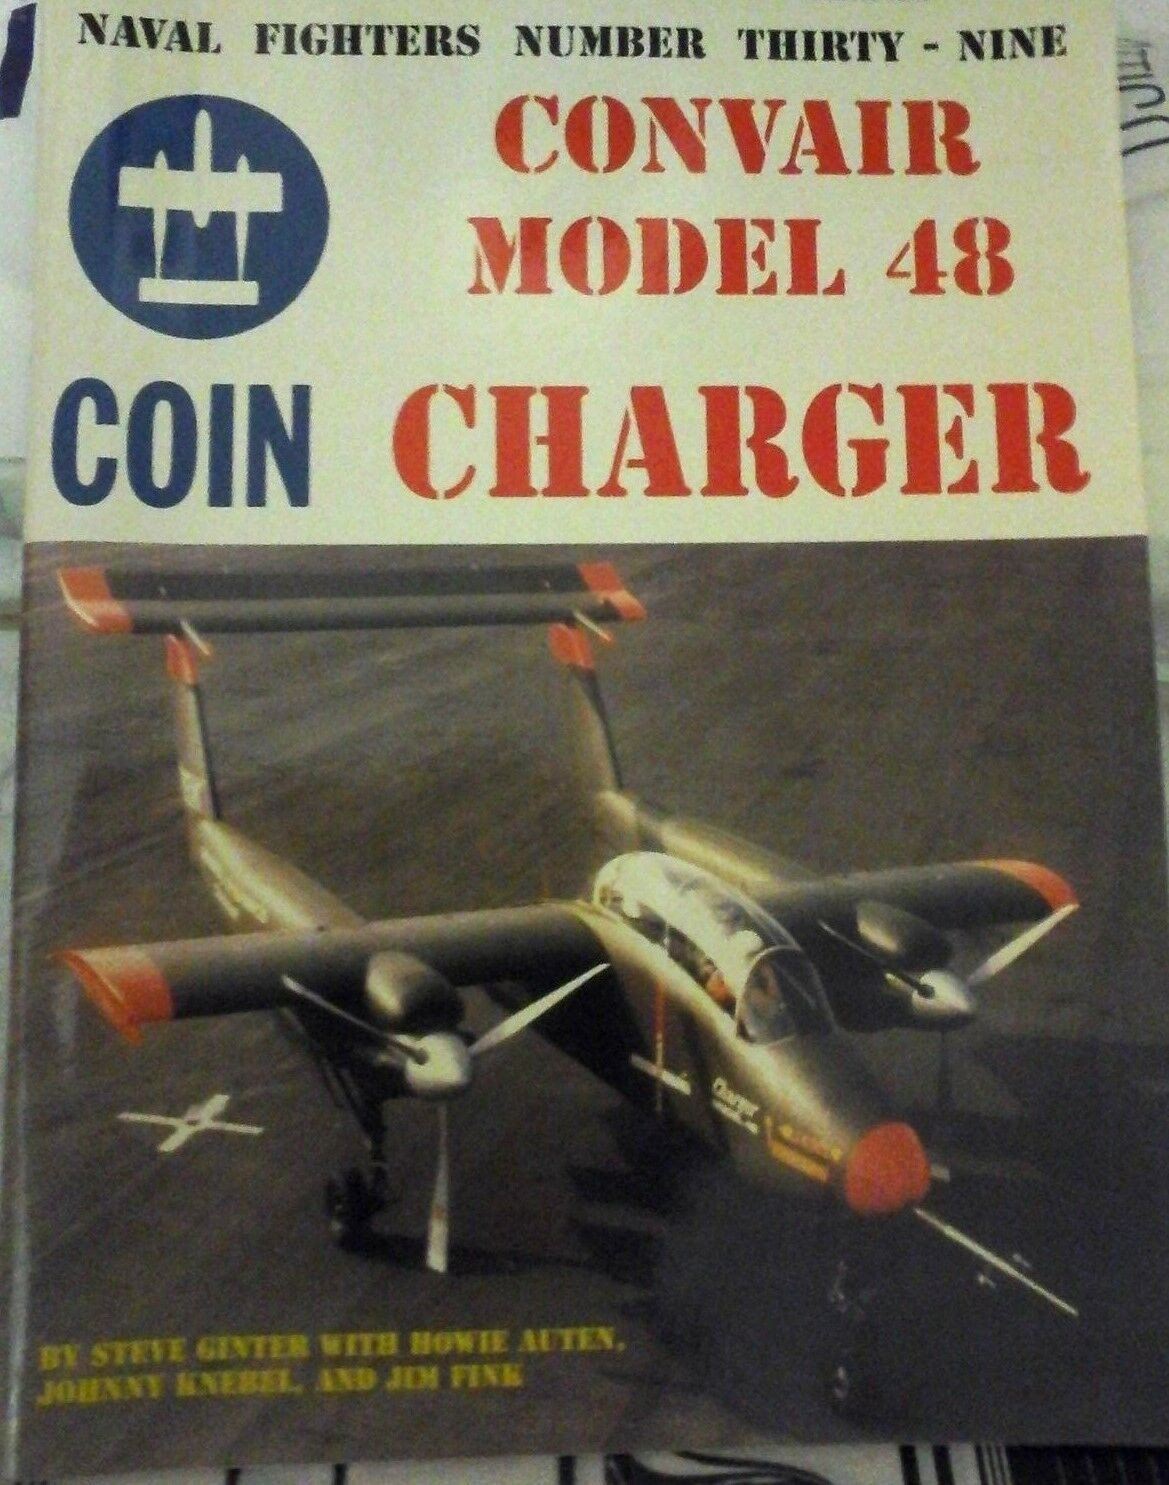 NAVAL FIGHTERS N.39  CONVAIR MODEL 48 COIN C-1st edition by Ginter Steve -(1982)